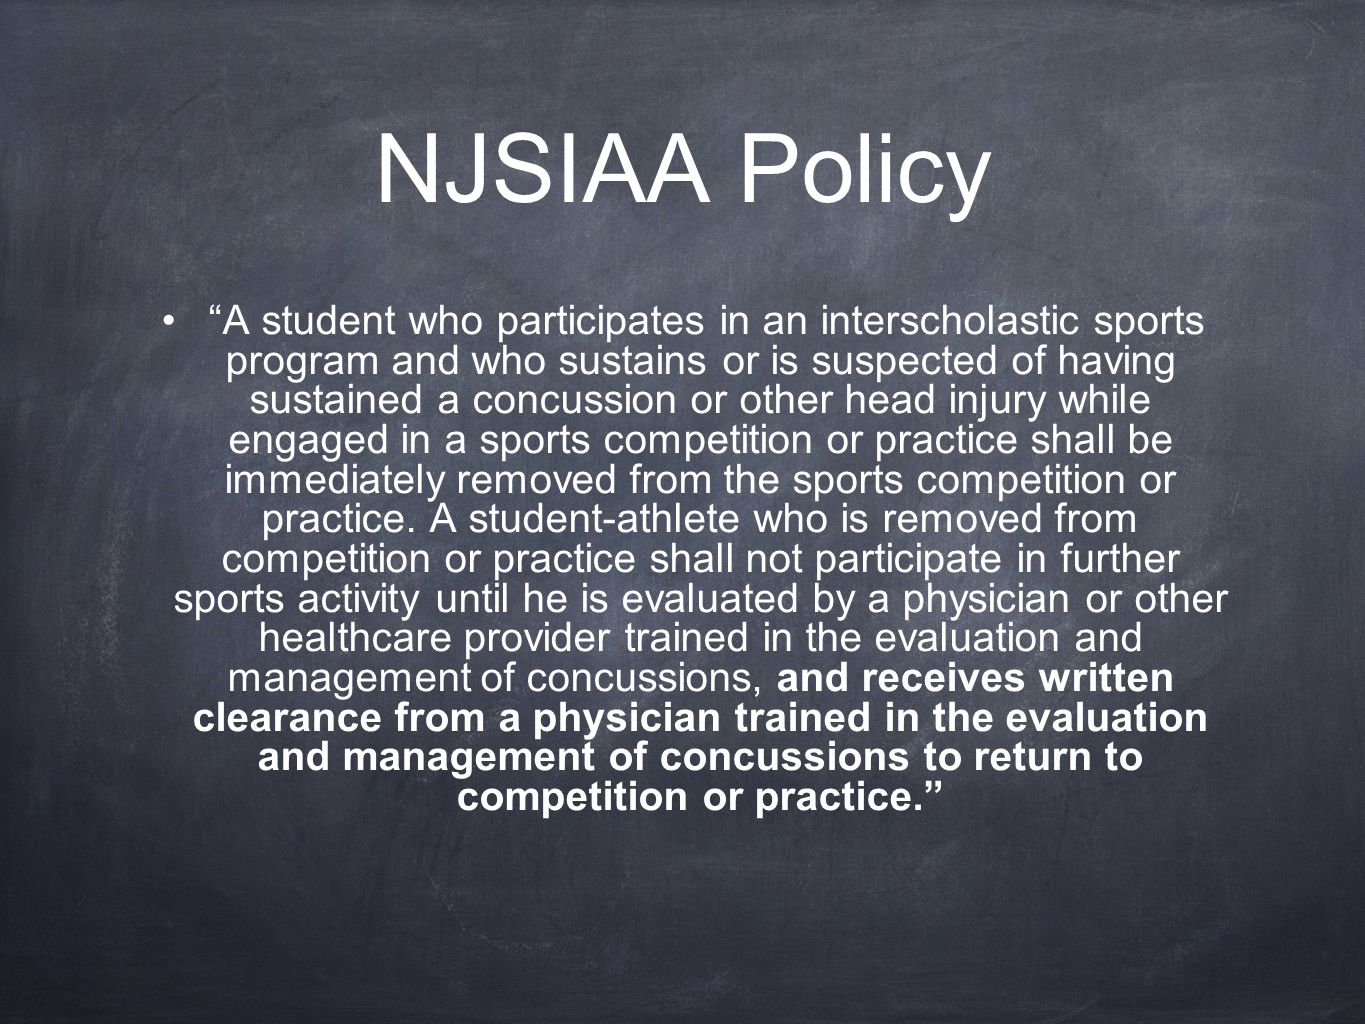 NJSIAA Policy A student who participates in an interscholastic sports program and who sustains or is suspected of having sustained a concussion or other head injury while engaged in a sports competition or practice shall be immediately removed from the sports competition or practice.